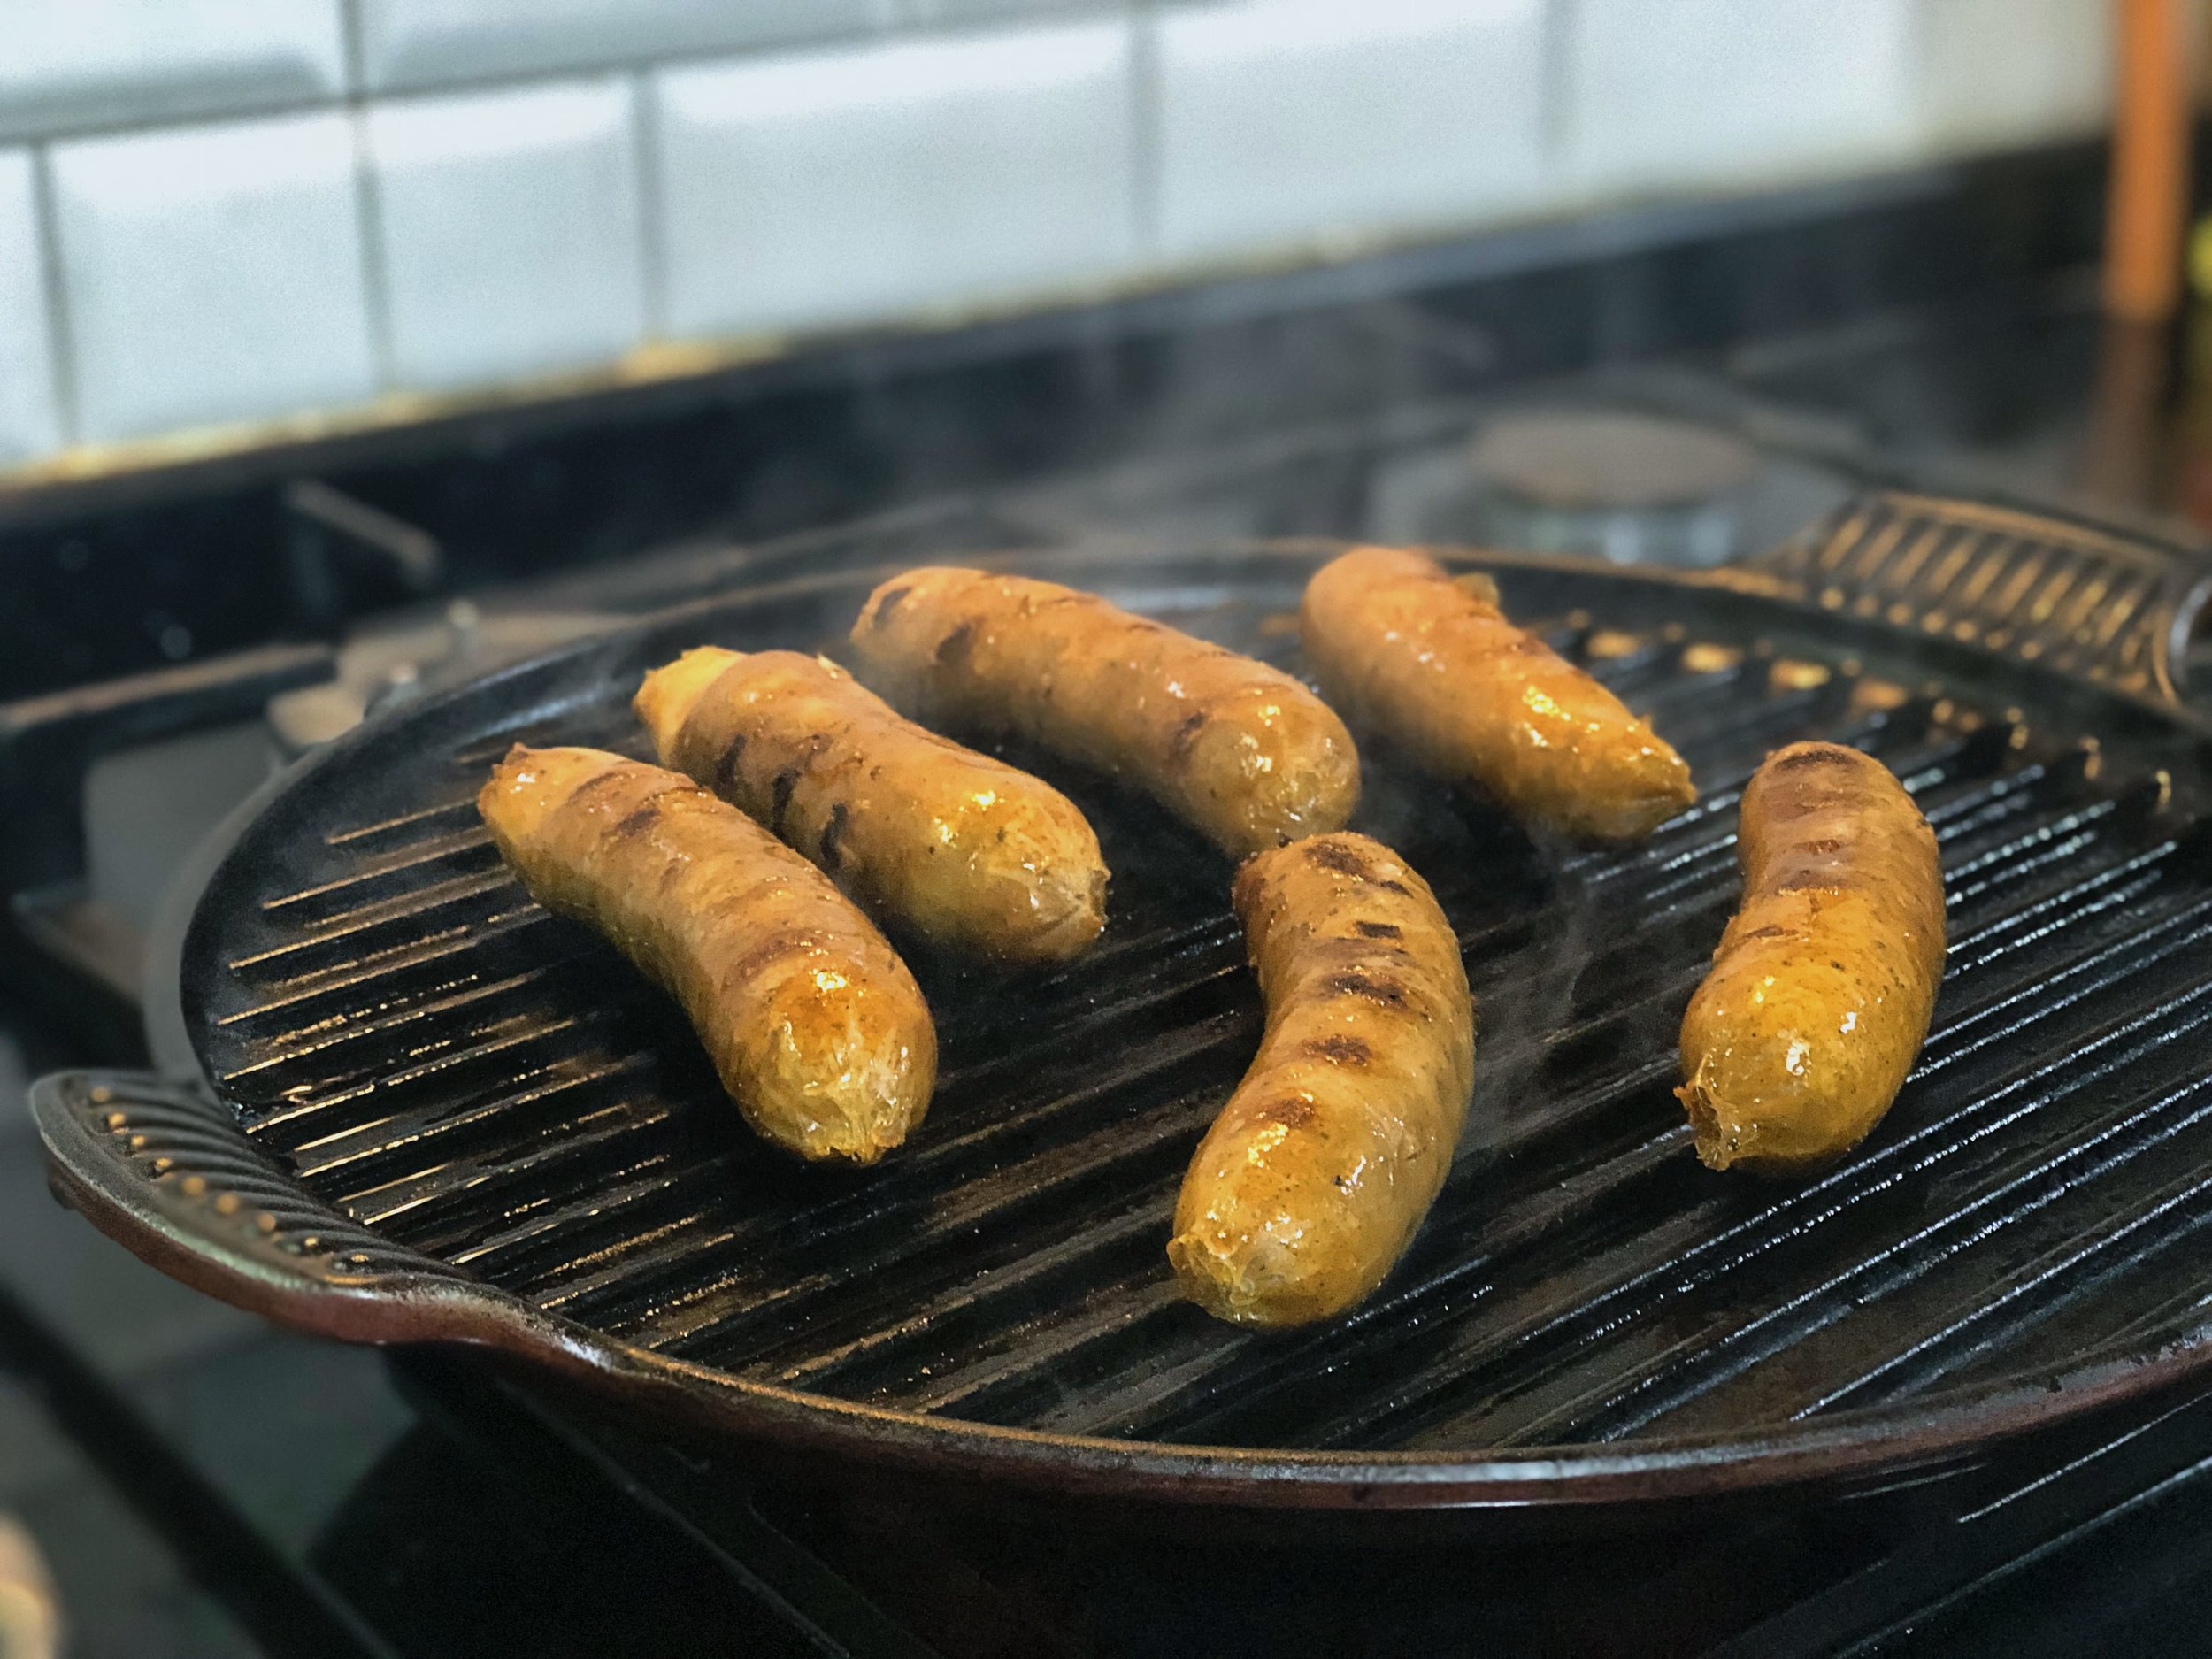 grilledsausages